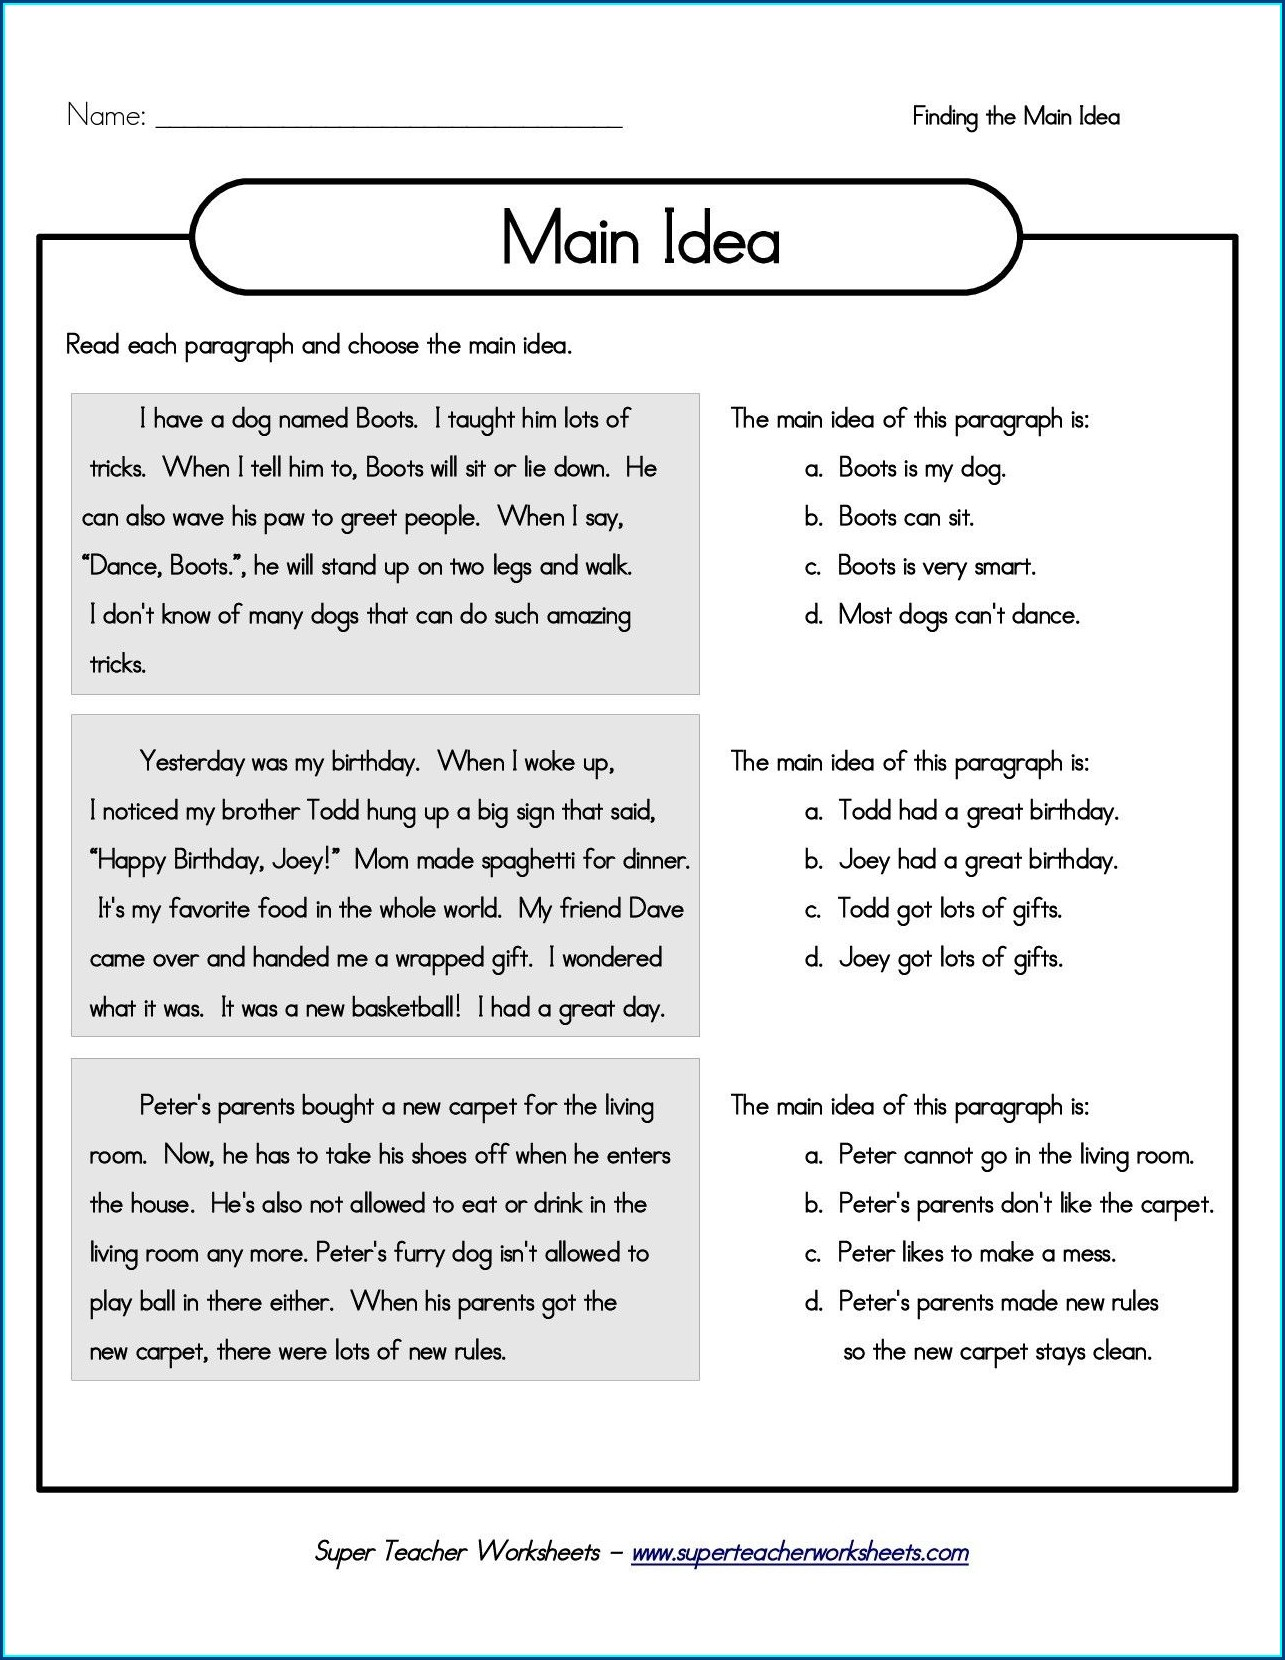 Martin Luther King Jr Main Idea Worksheet